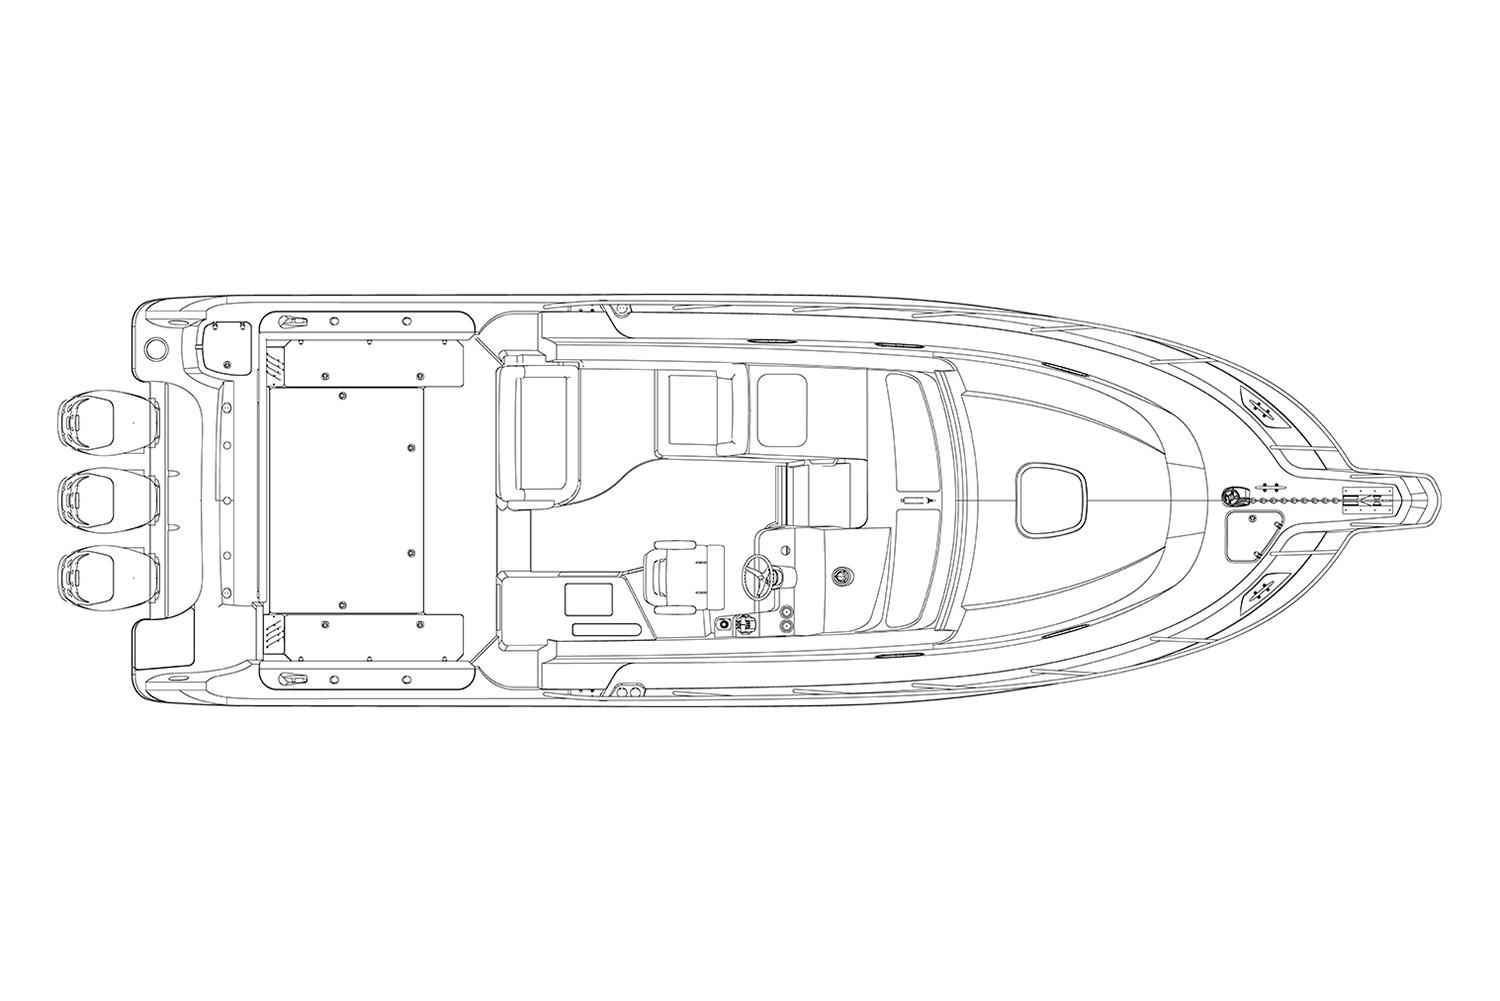 2020 Boston Whaler                                                              345 Conquest Image Thumbnail #1